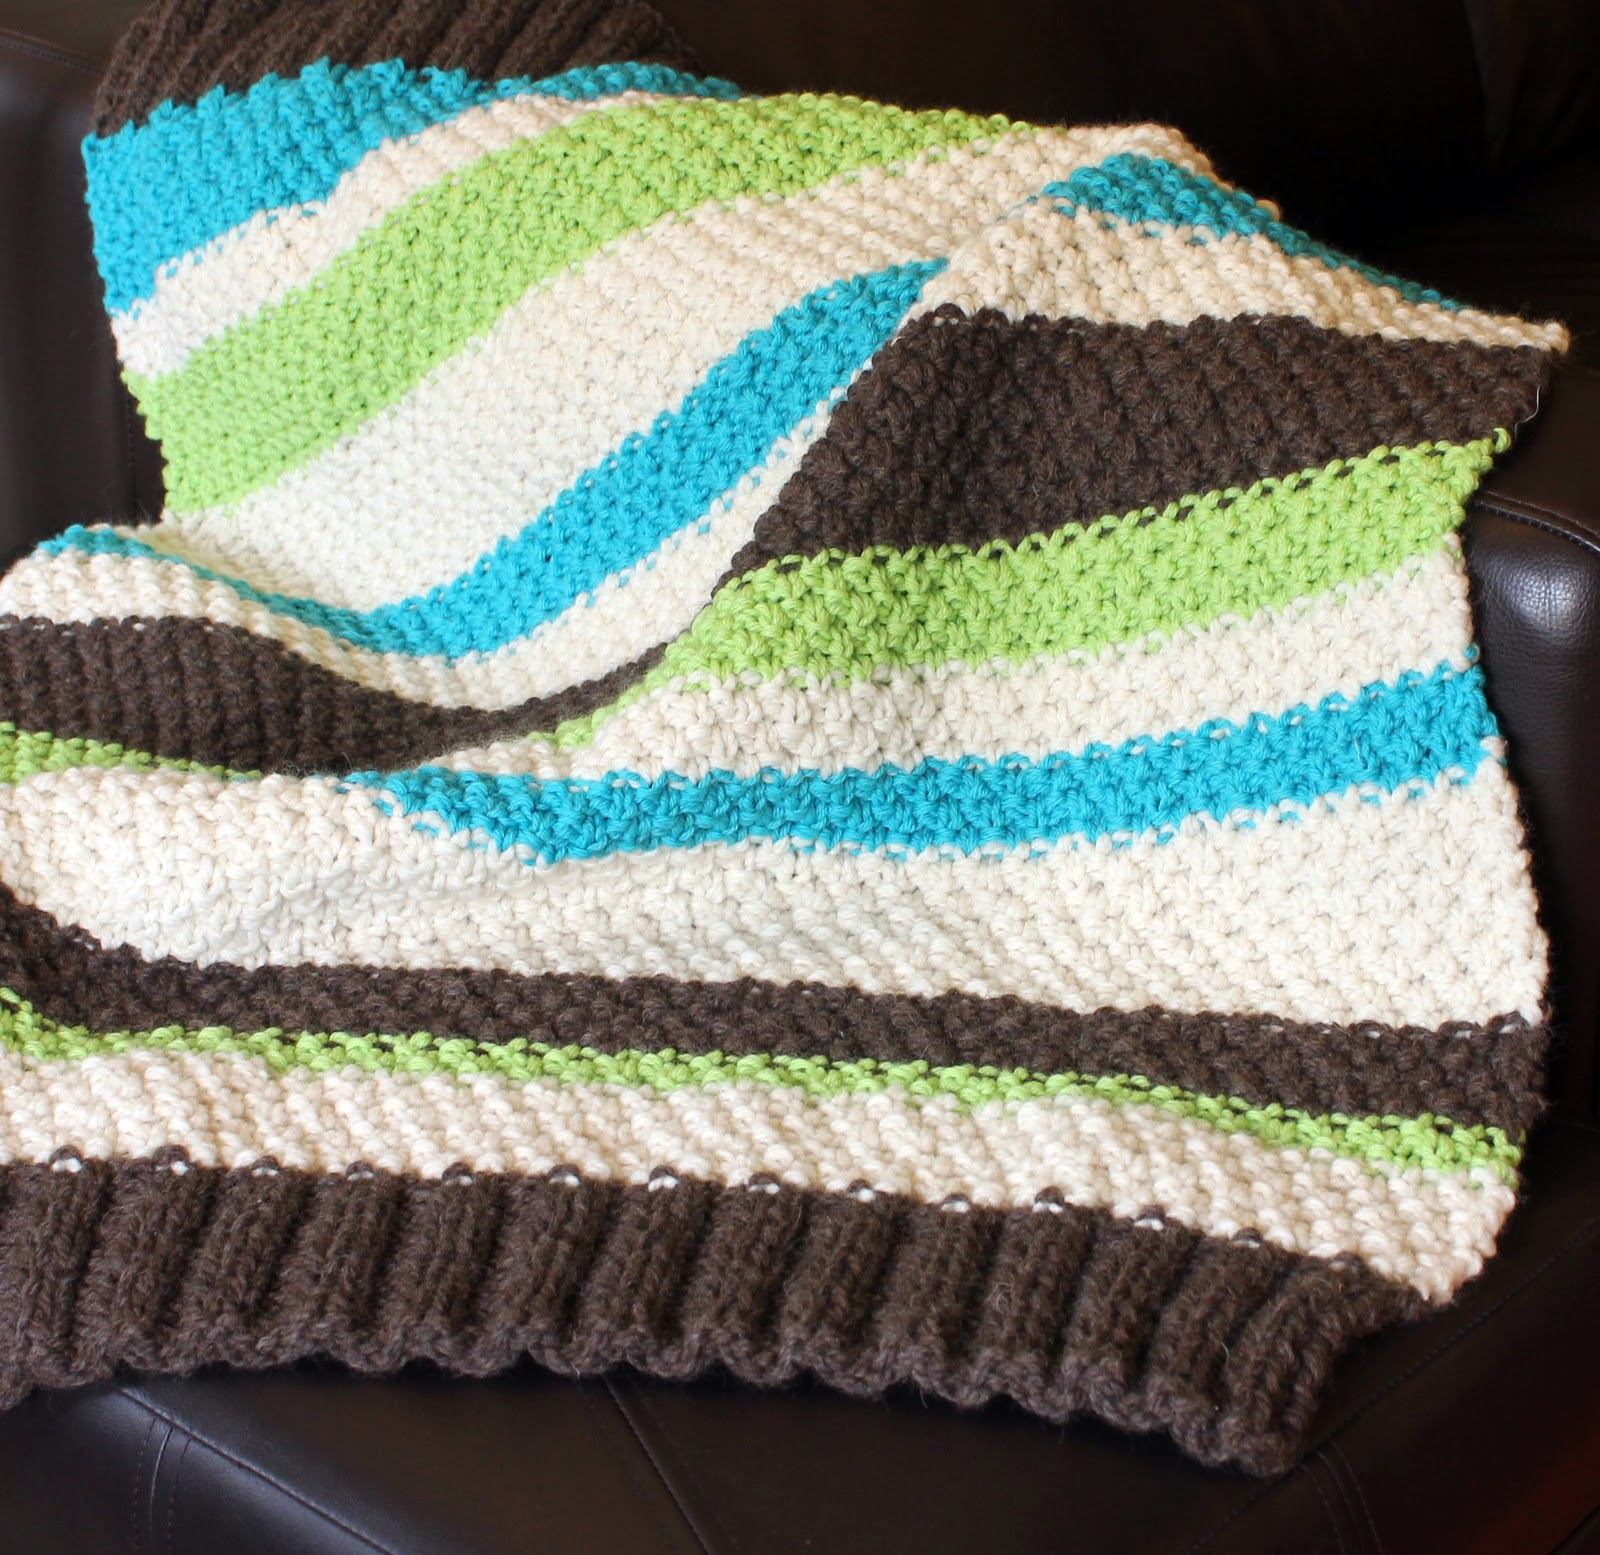 Free Knitting Patterns For Blankets And Throws : Easy Baby Blanket Knitting Pattern for Beginners - with Free Printable